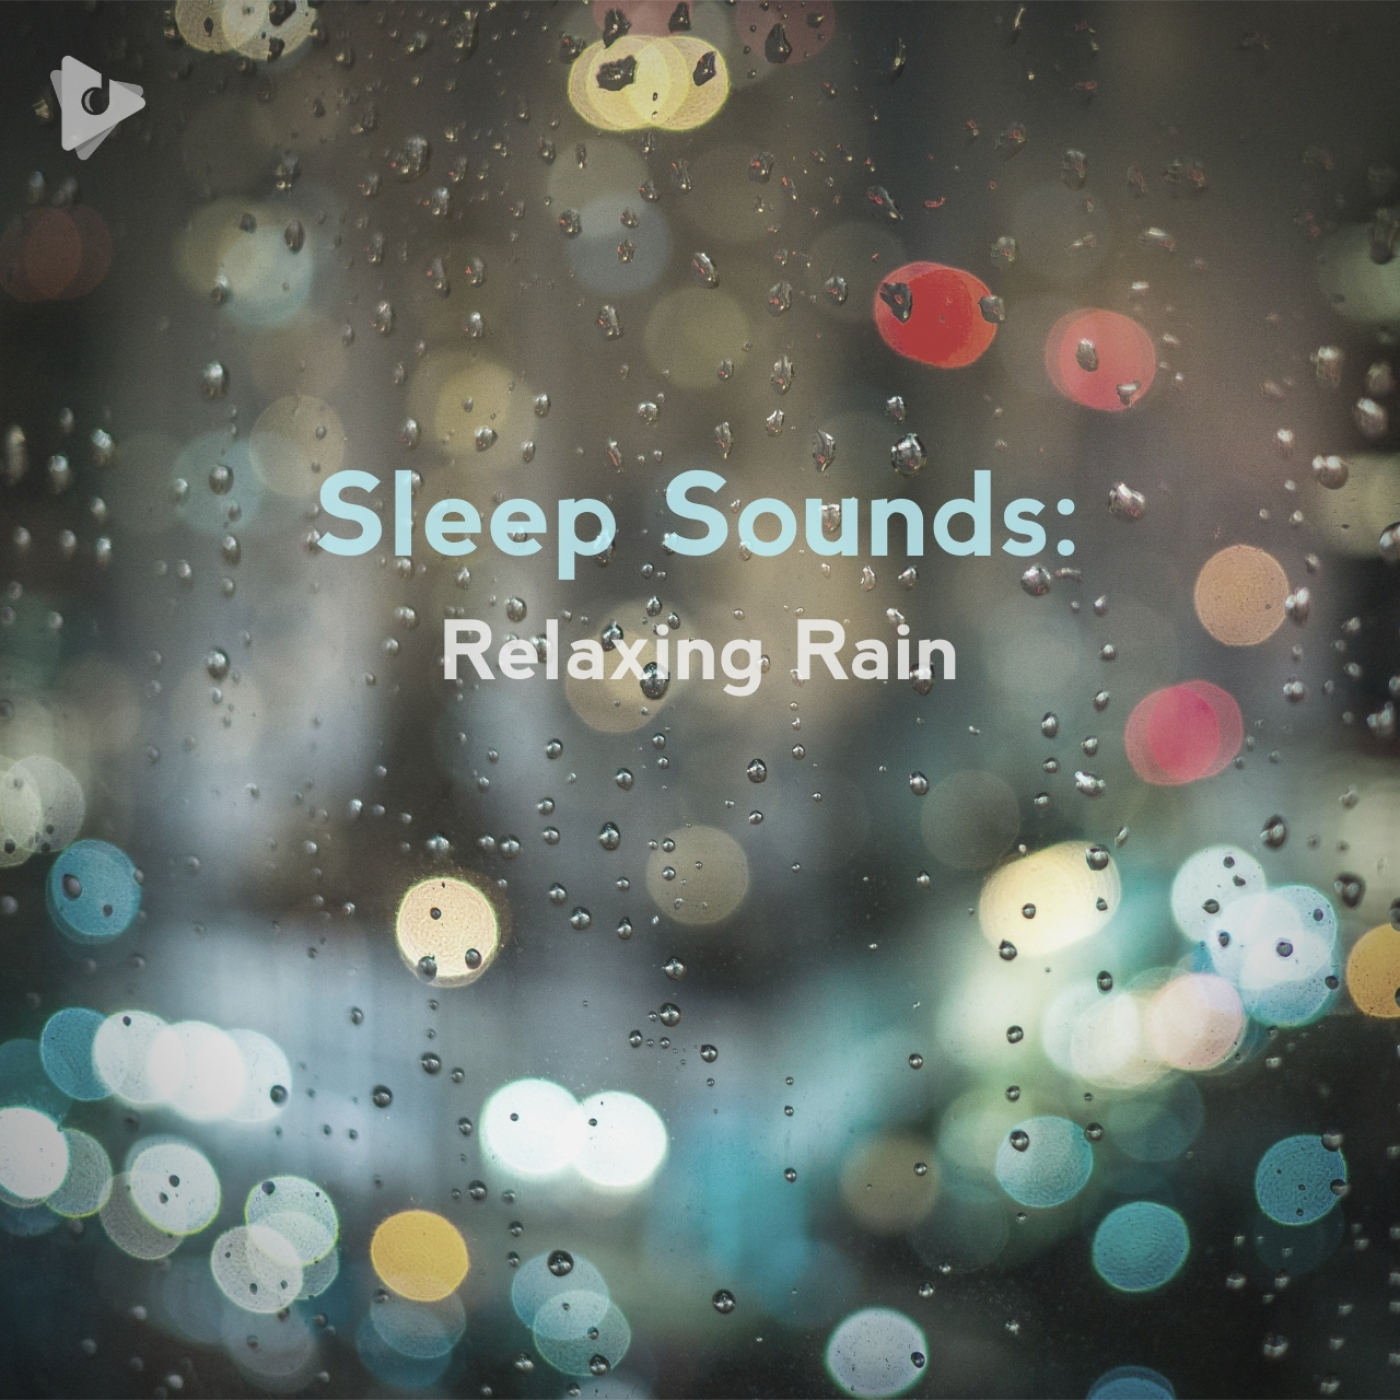 Sleep Sounds: Relaxing Rain